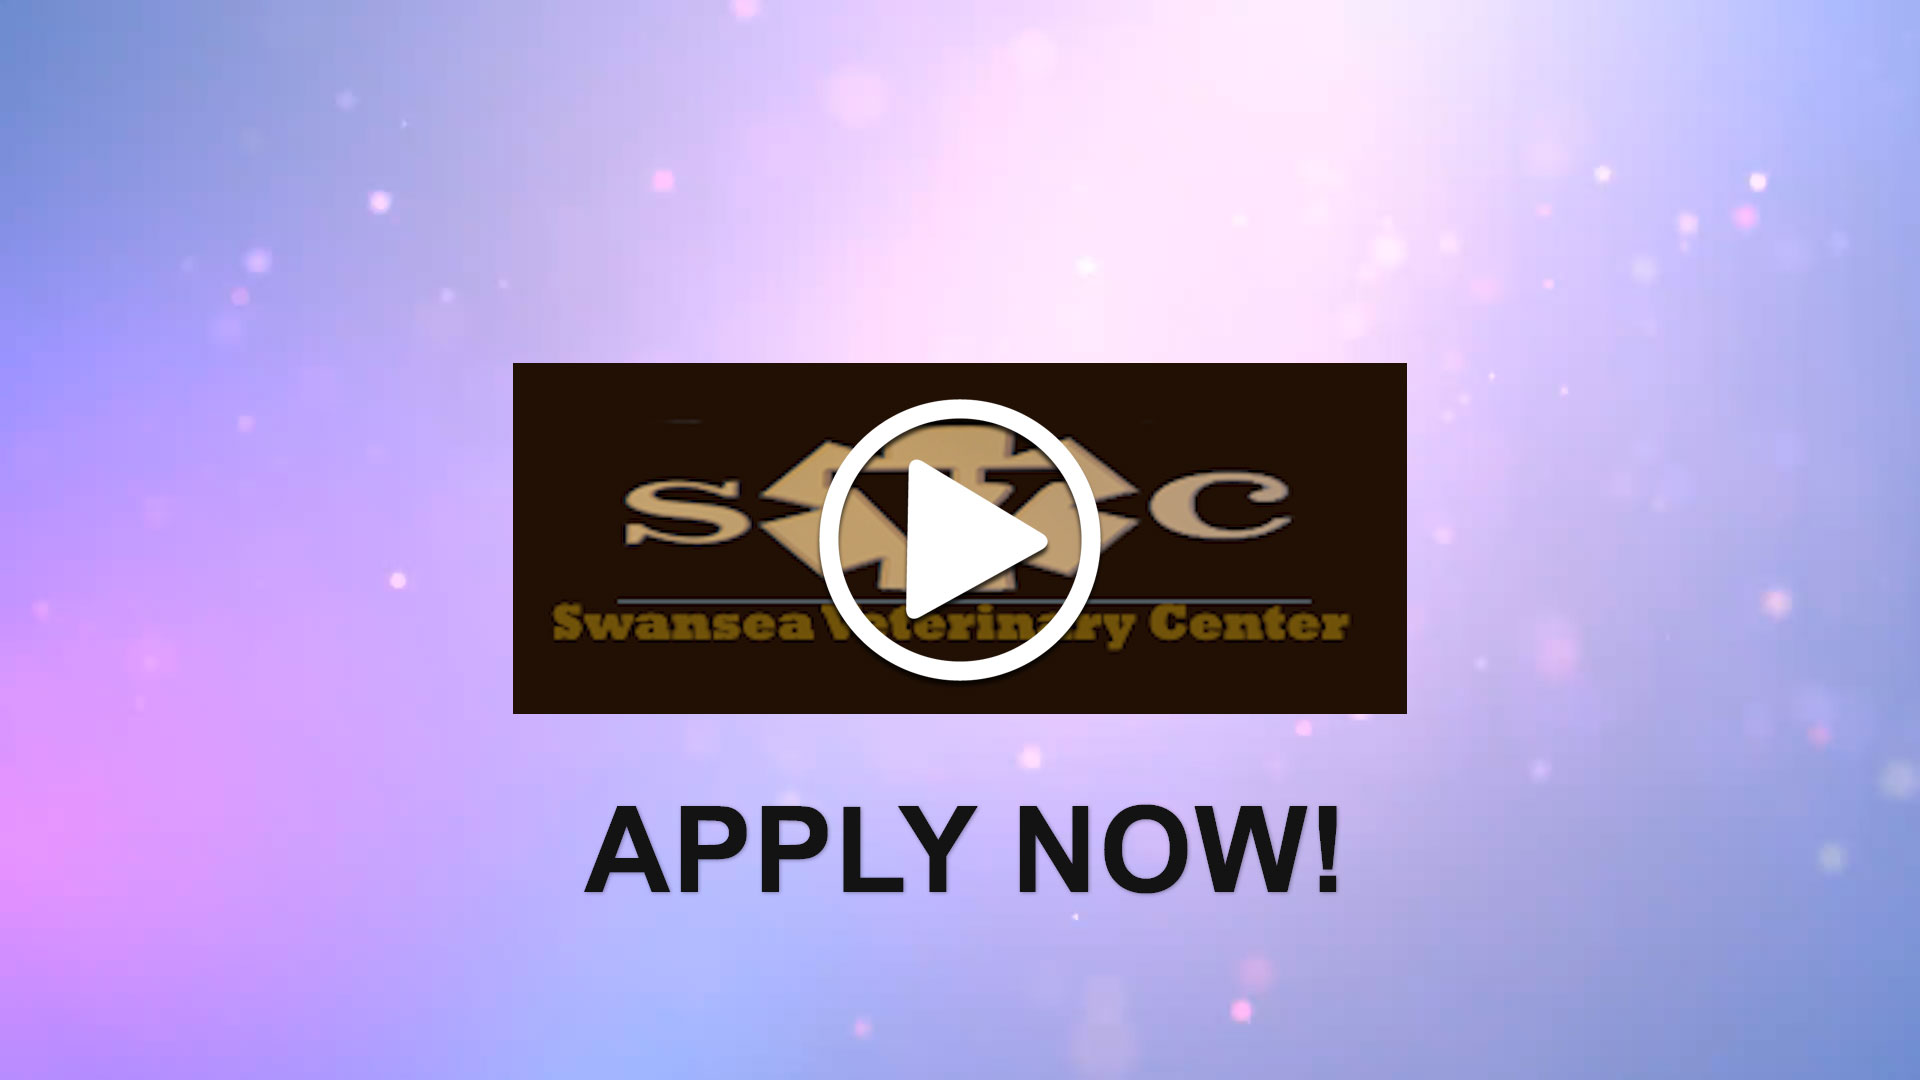 Watch our careers video for available job opening Associate Veterinarian  in Swansea, MA, USA